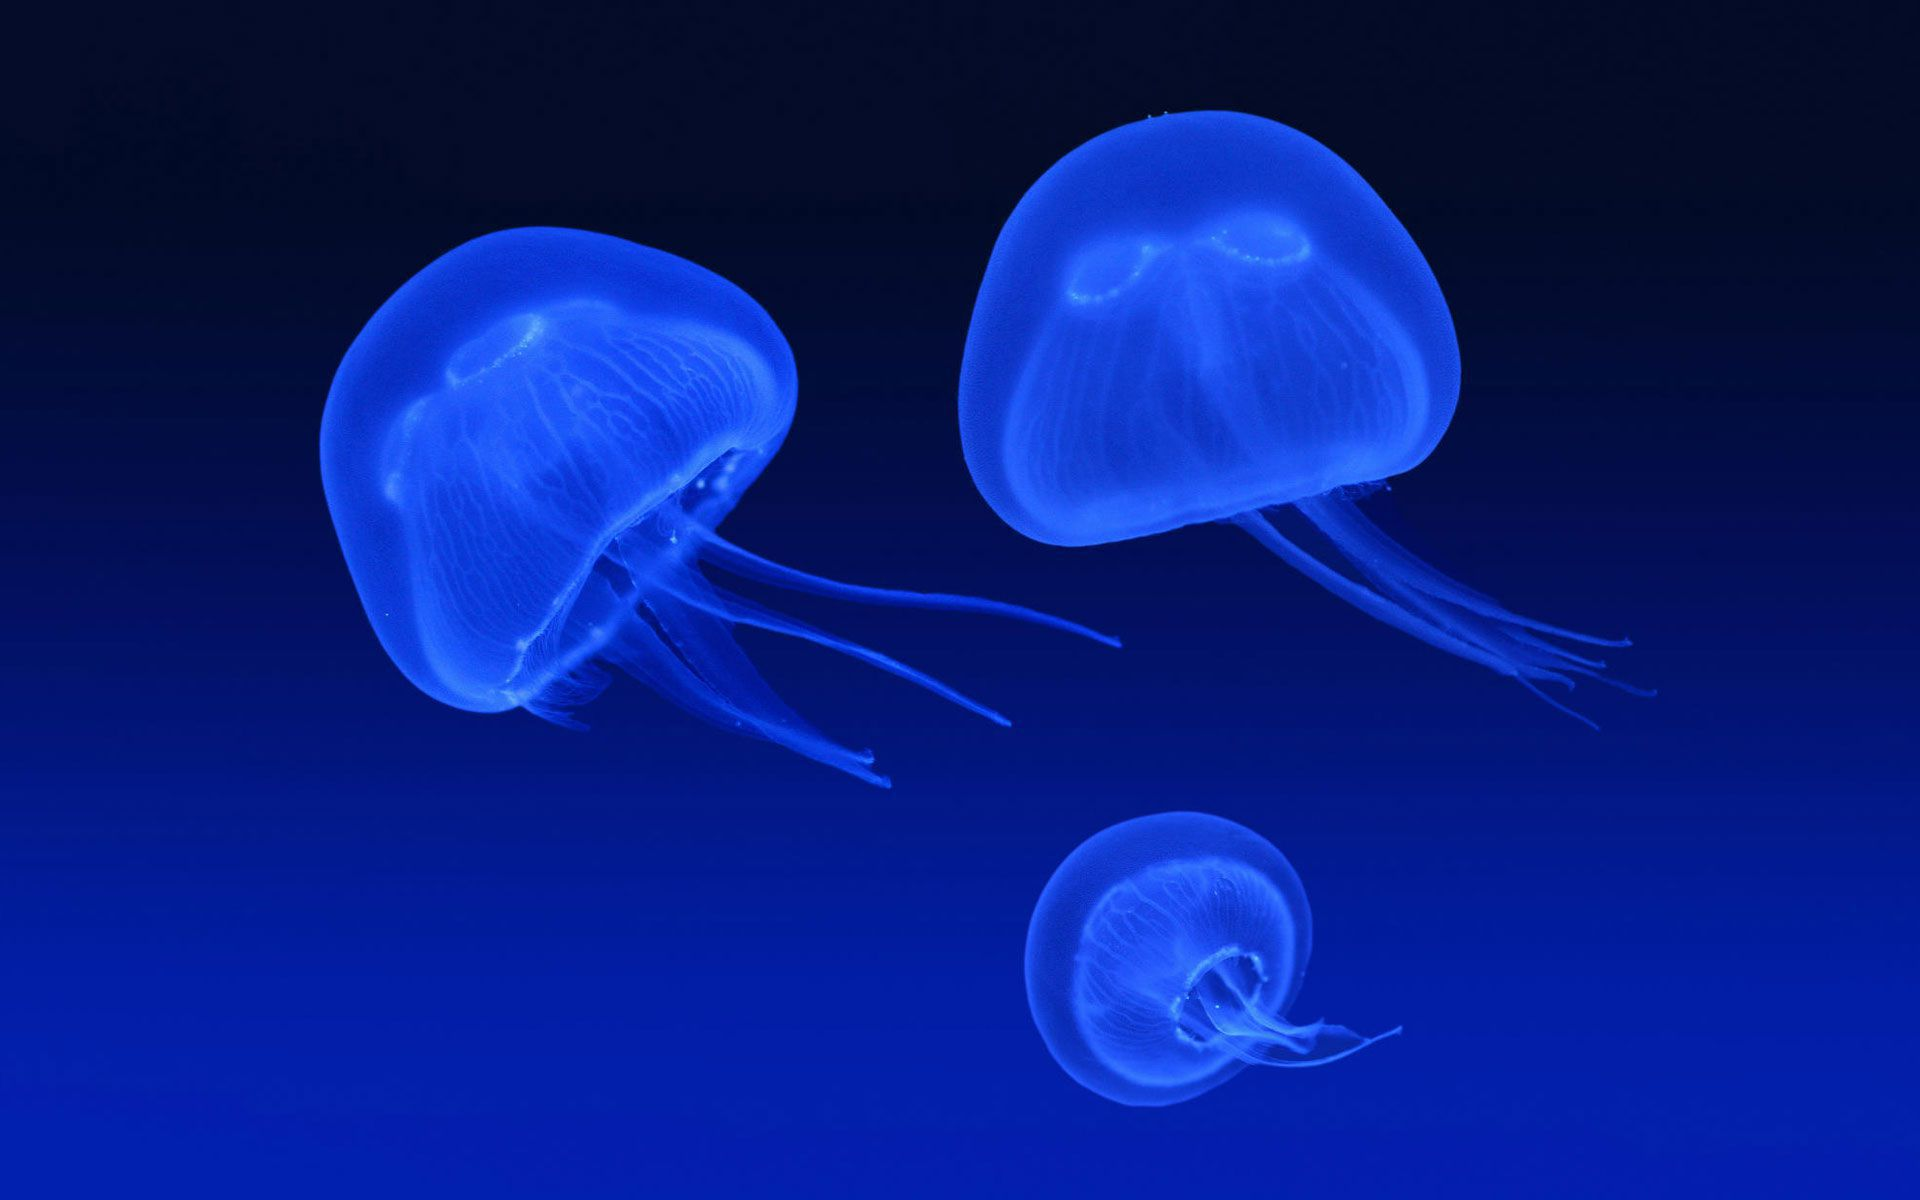 Box Jellyfish Wallpapers HD